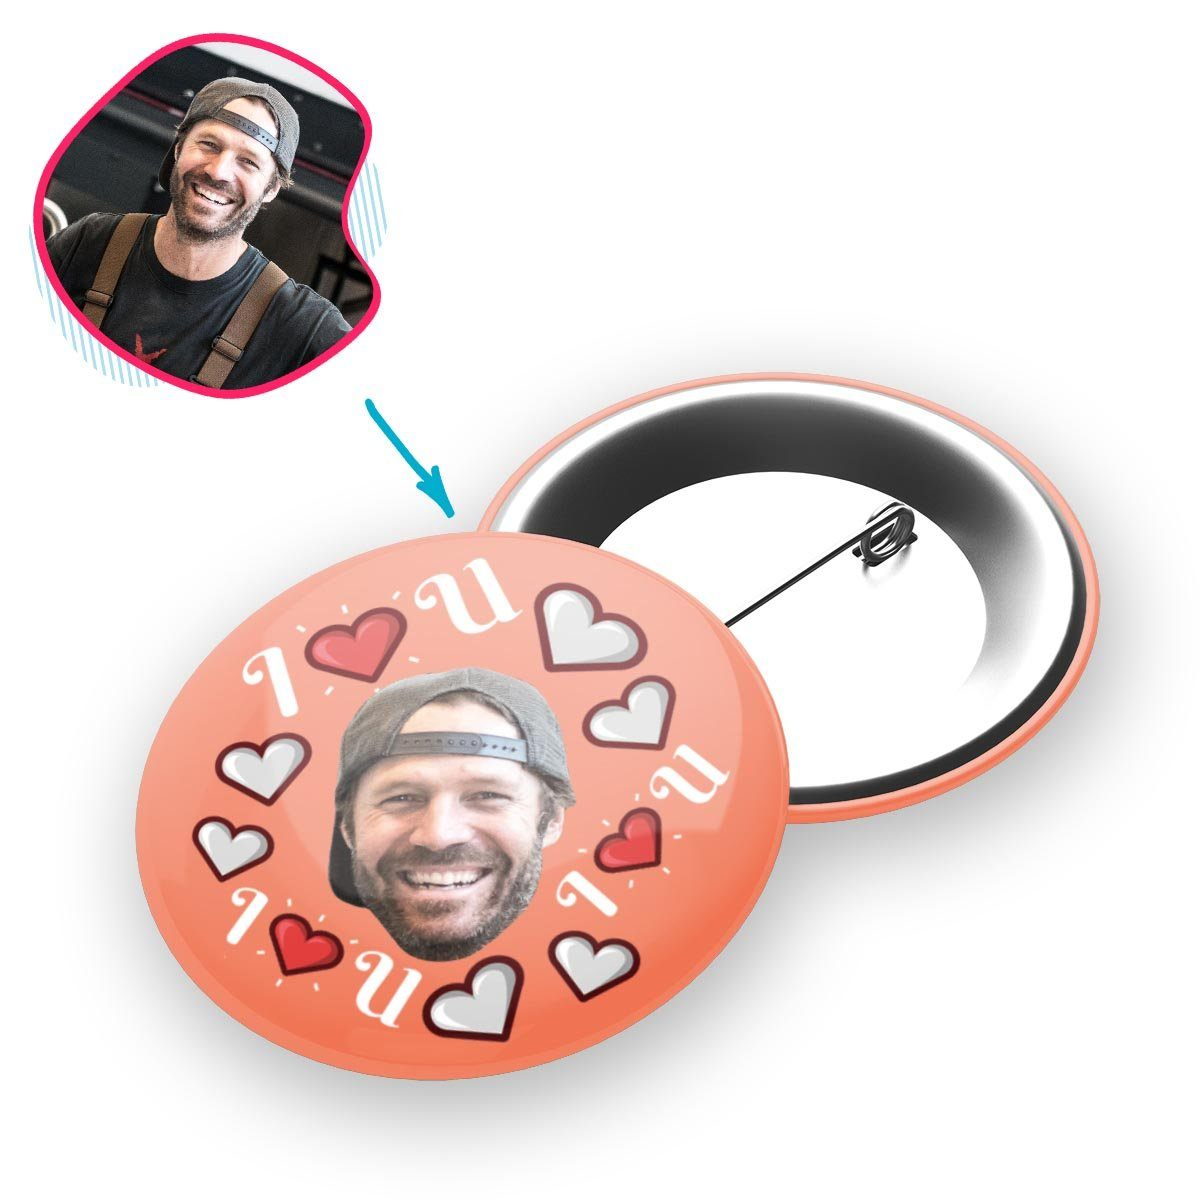 salmon I <3 You pin personalized with photo of face printed on it